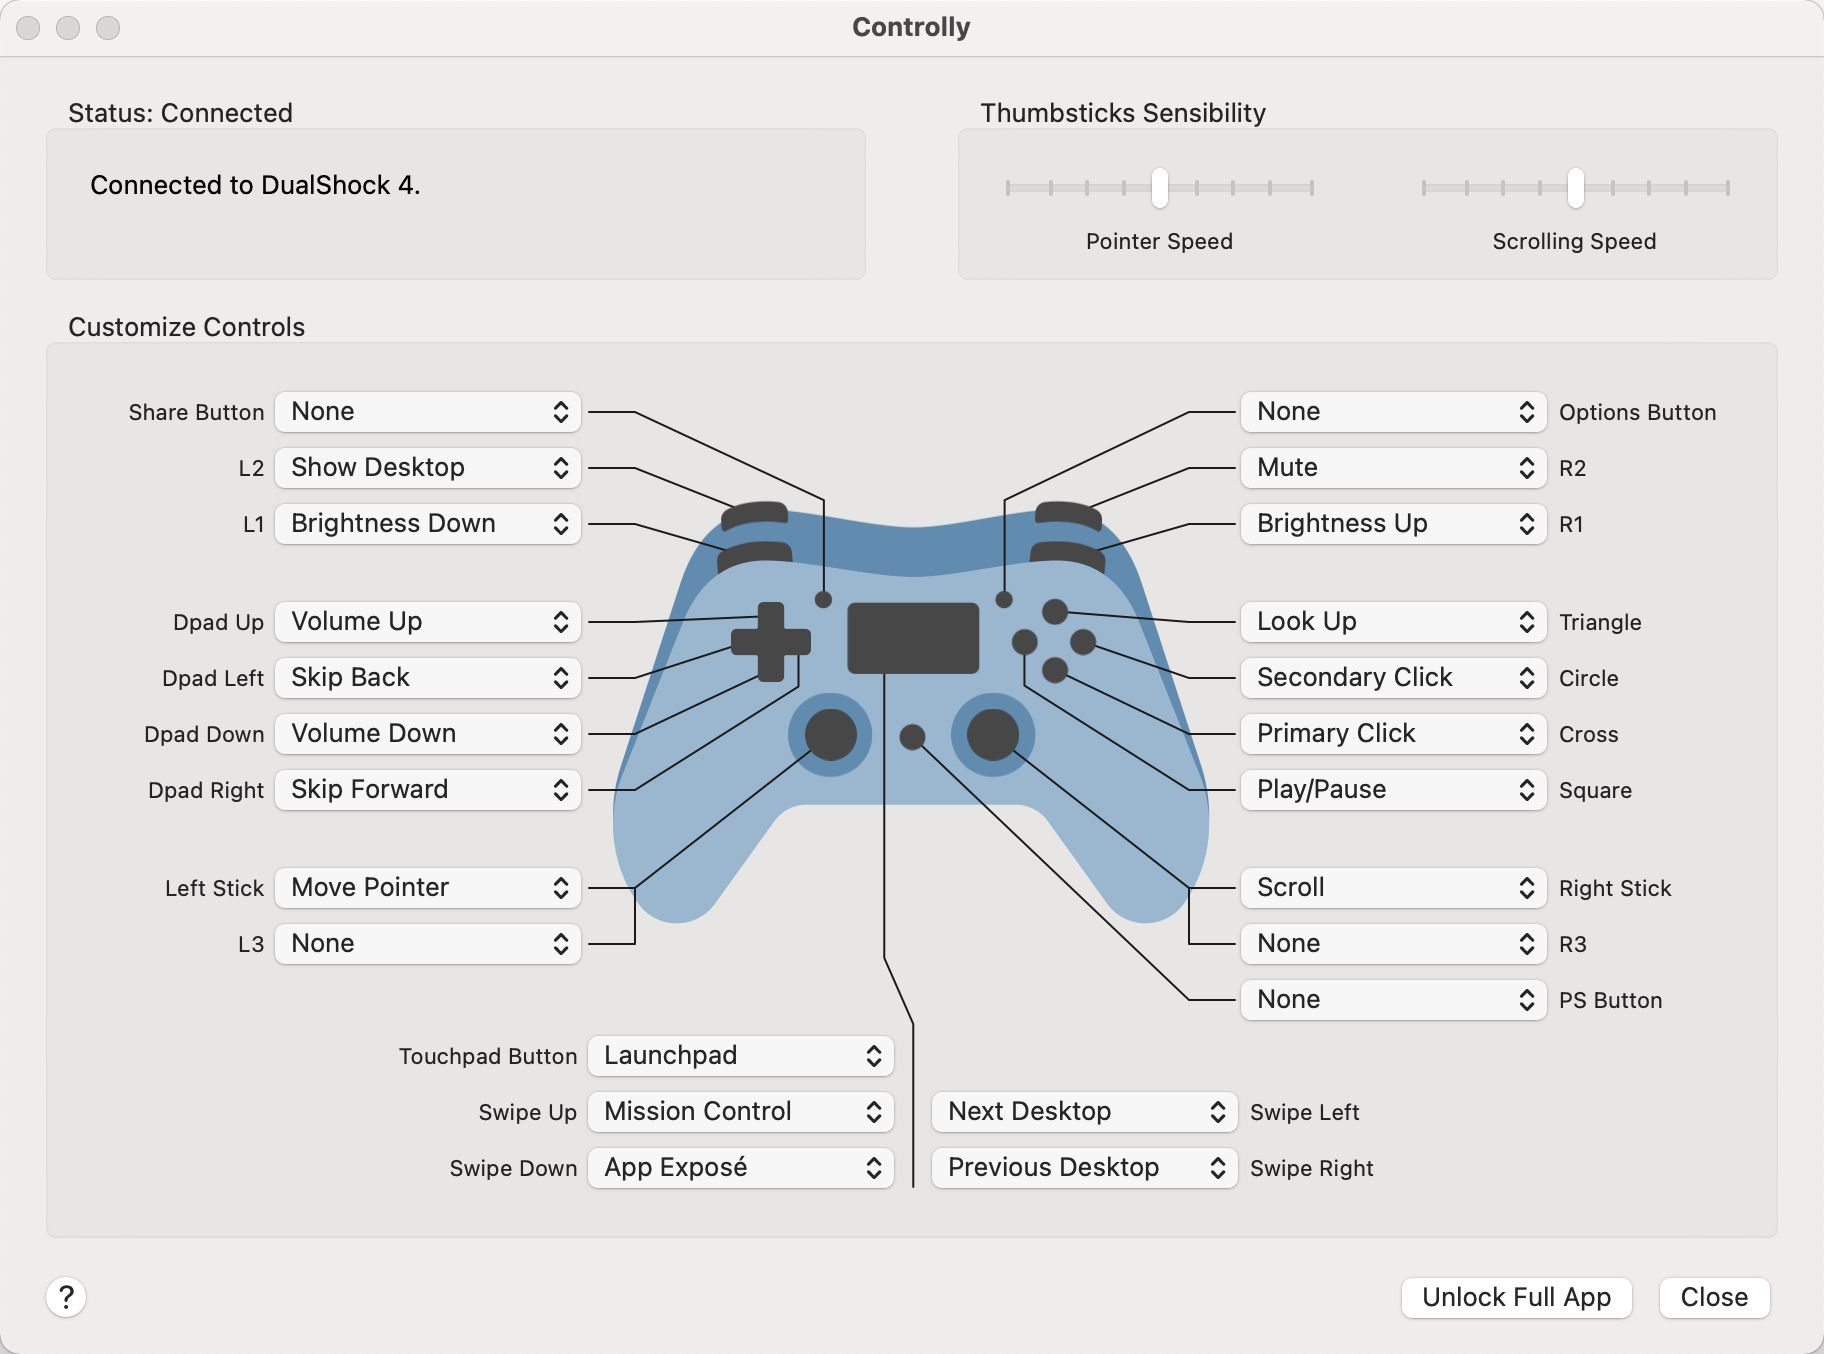 'Controlly' App Turns a Game Controller Into a Remote Control for Macs